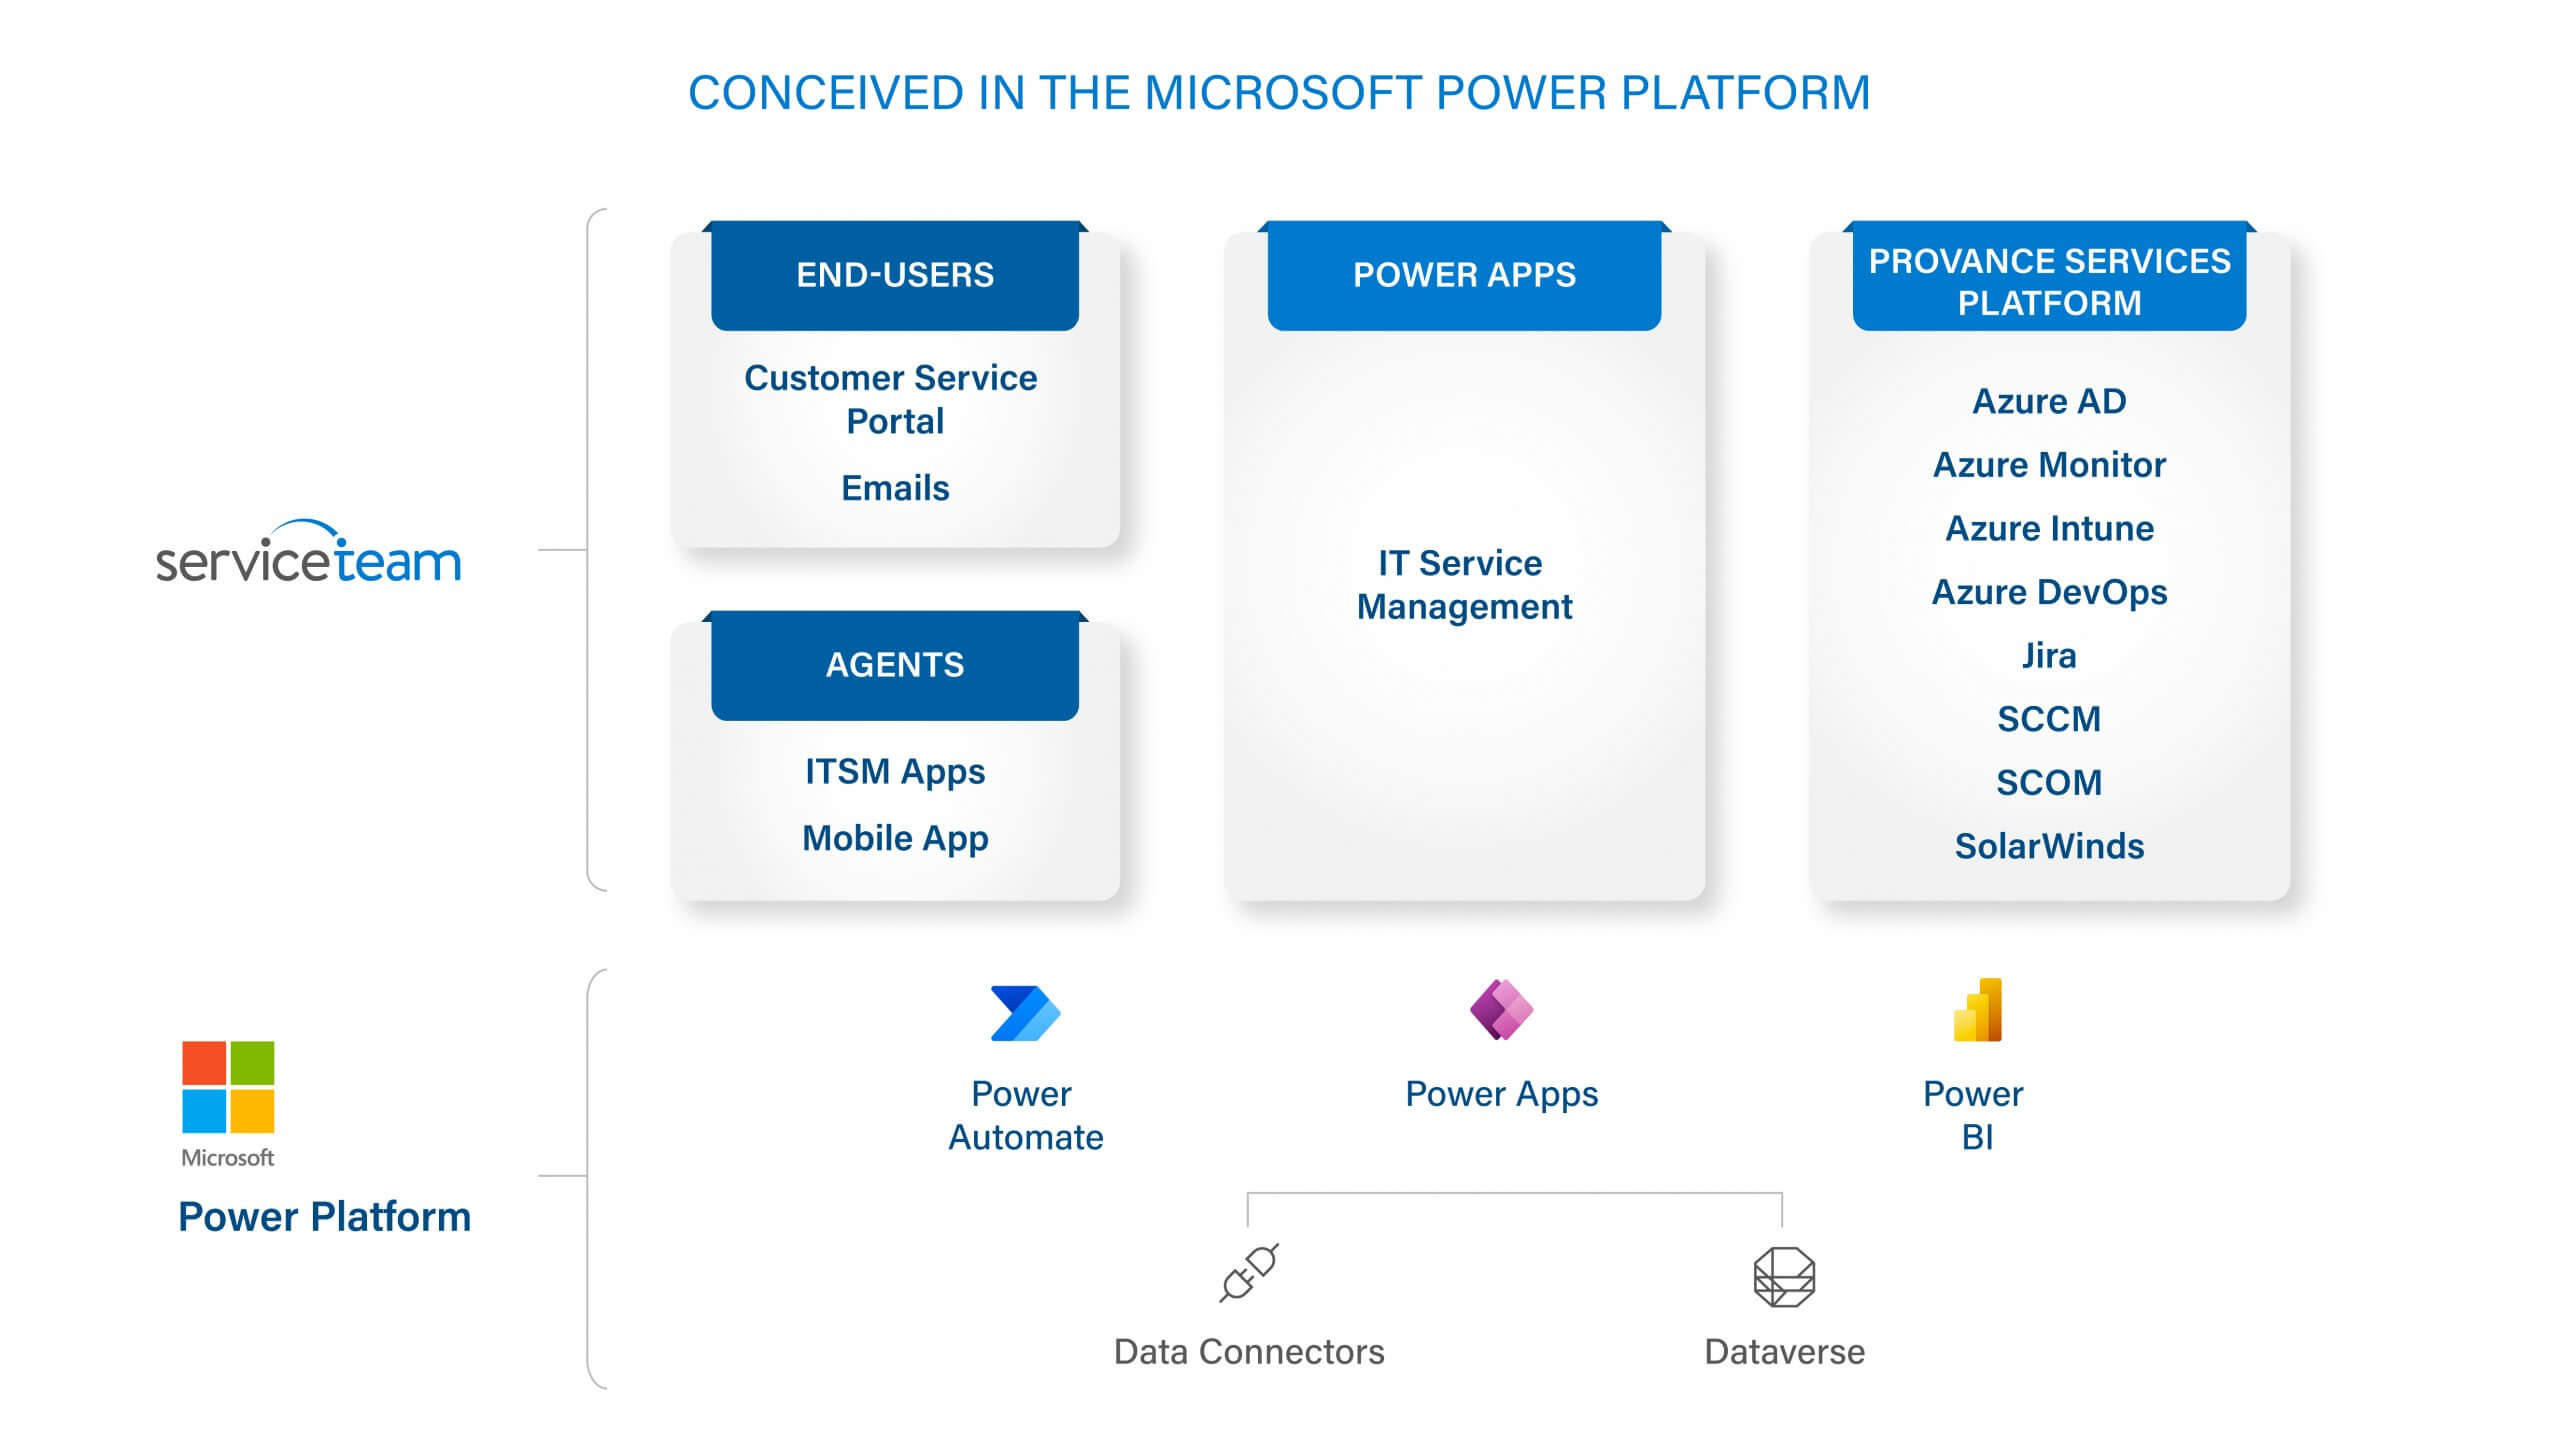 Conceived in the Microsoft Power Platform Diagram